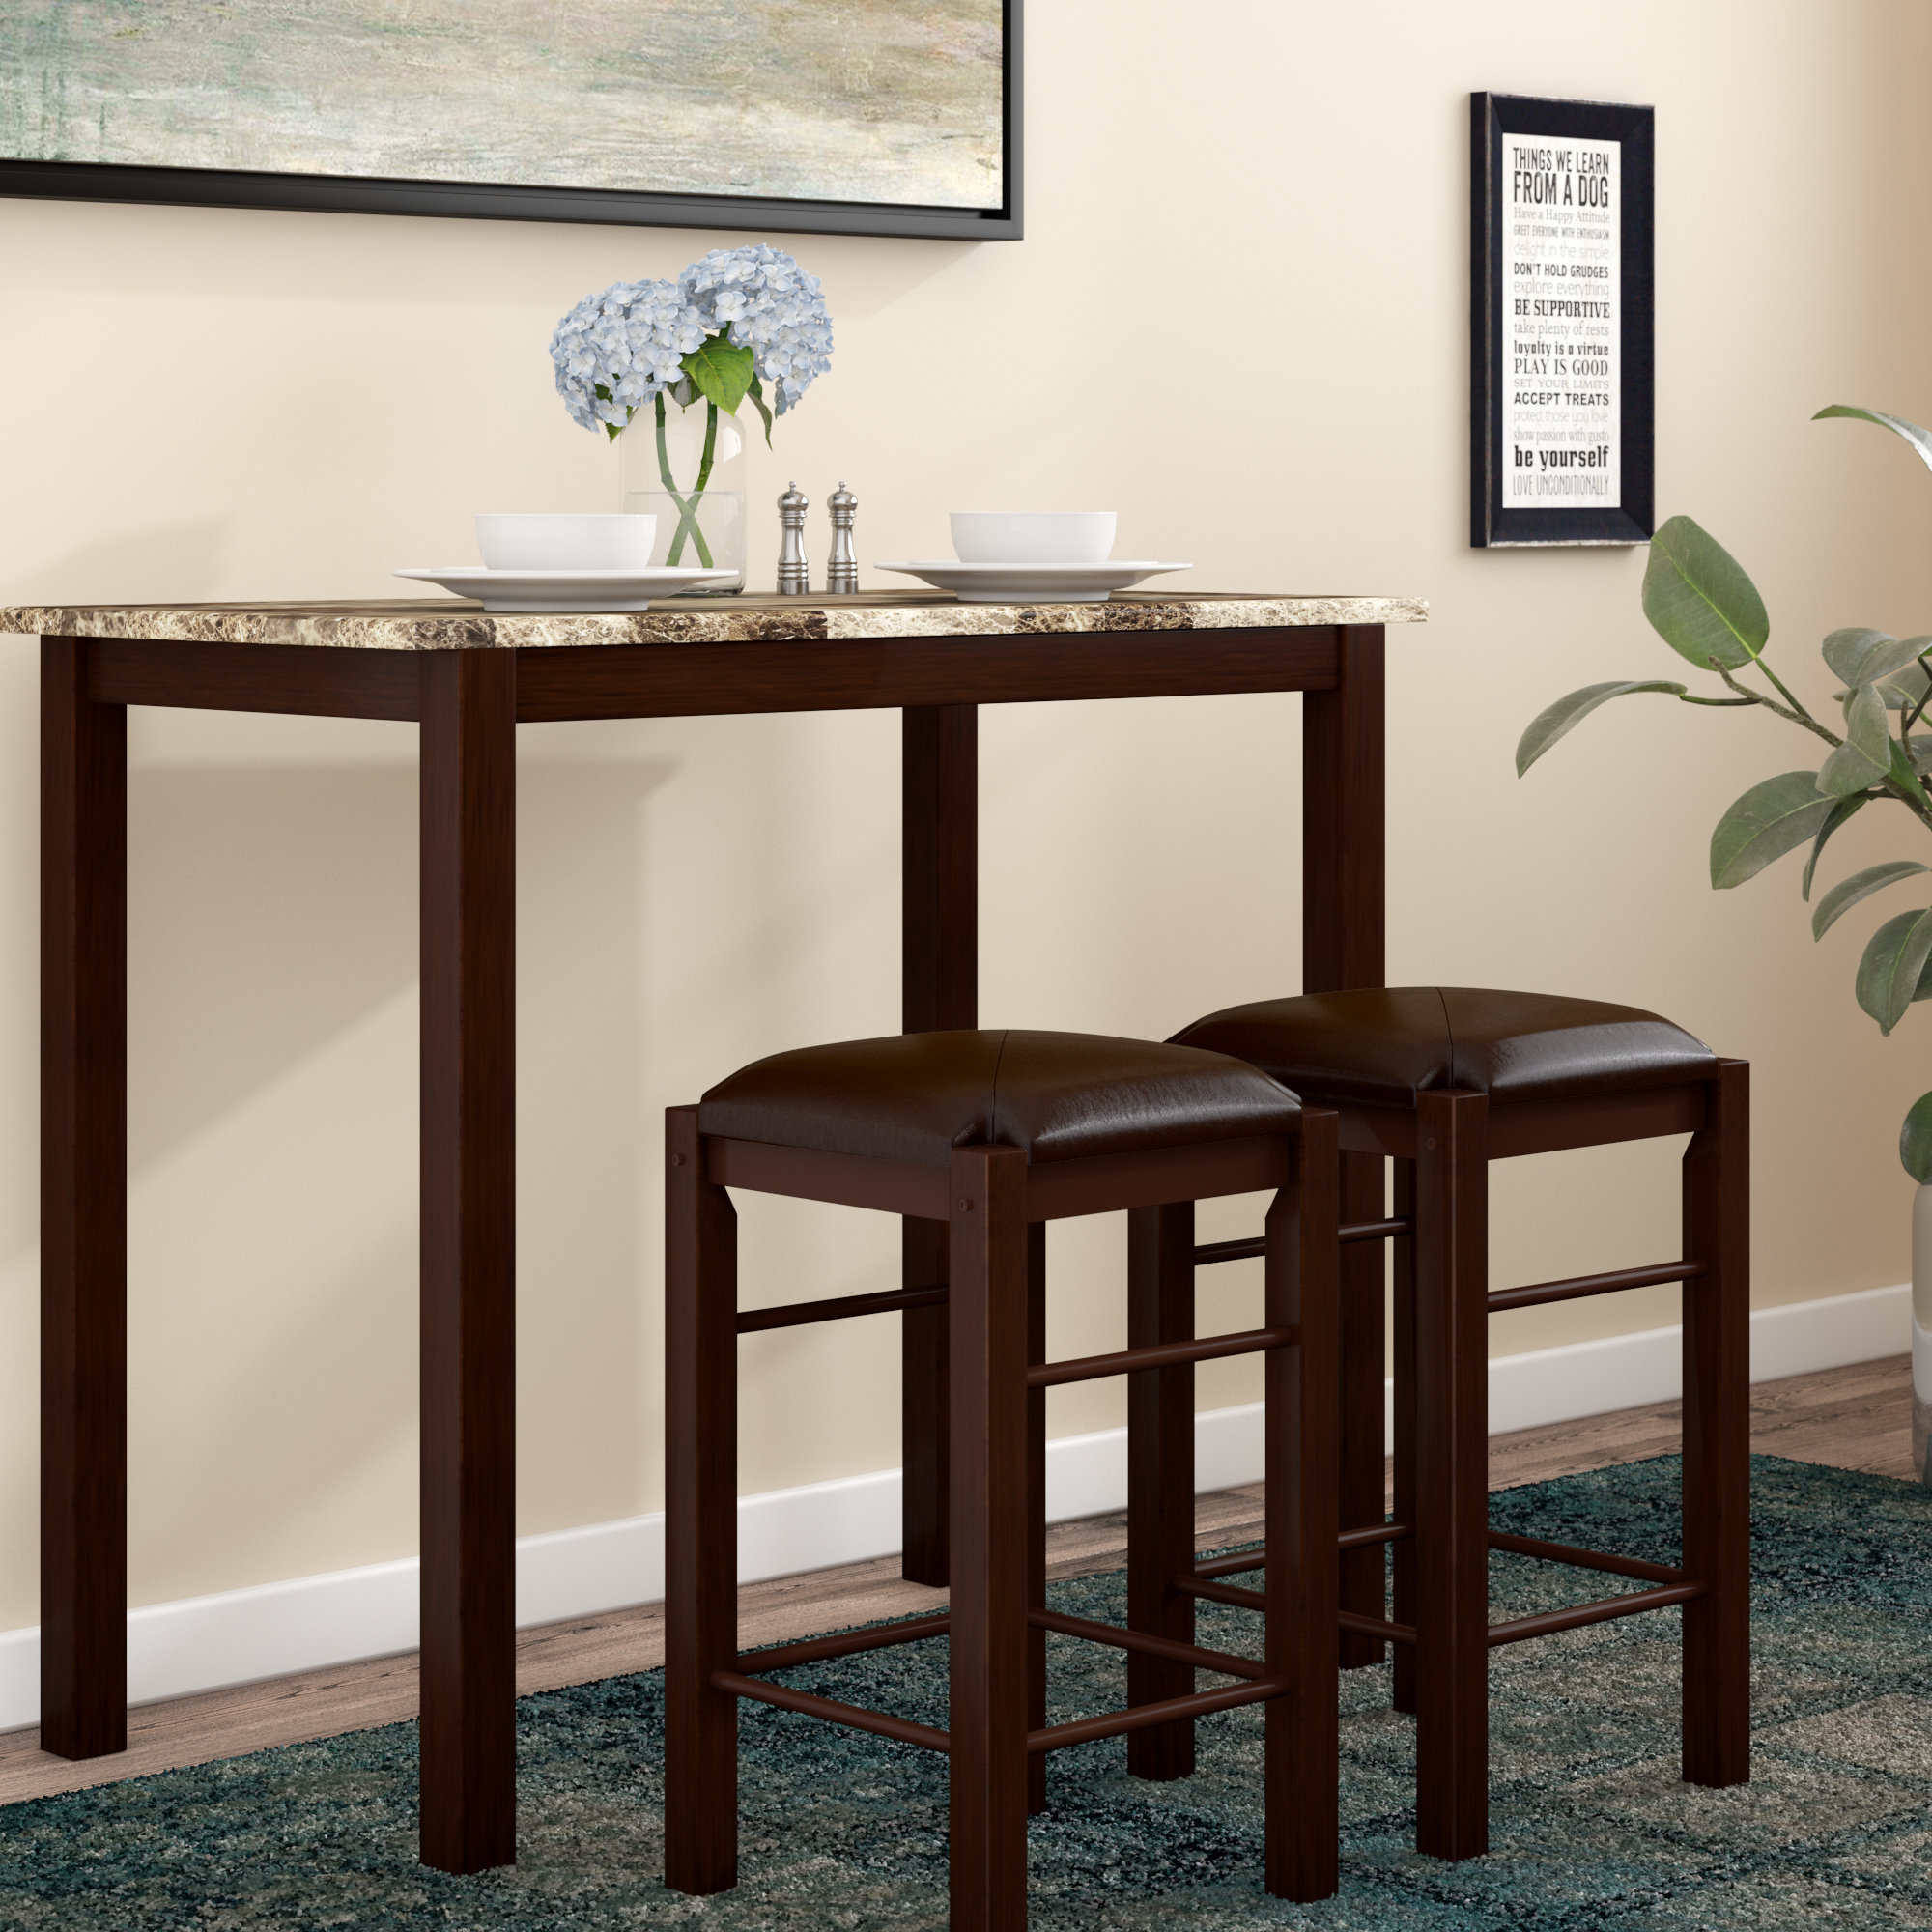 Penelope 3 Piece Counter Height Wood Dining Set Throughout Most Recent Lillard 3 Piece Breakfast Nook Dining Sets (Image 14 of 20)